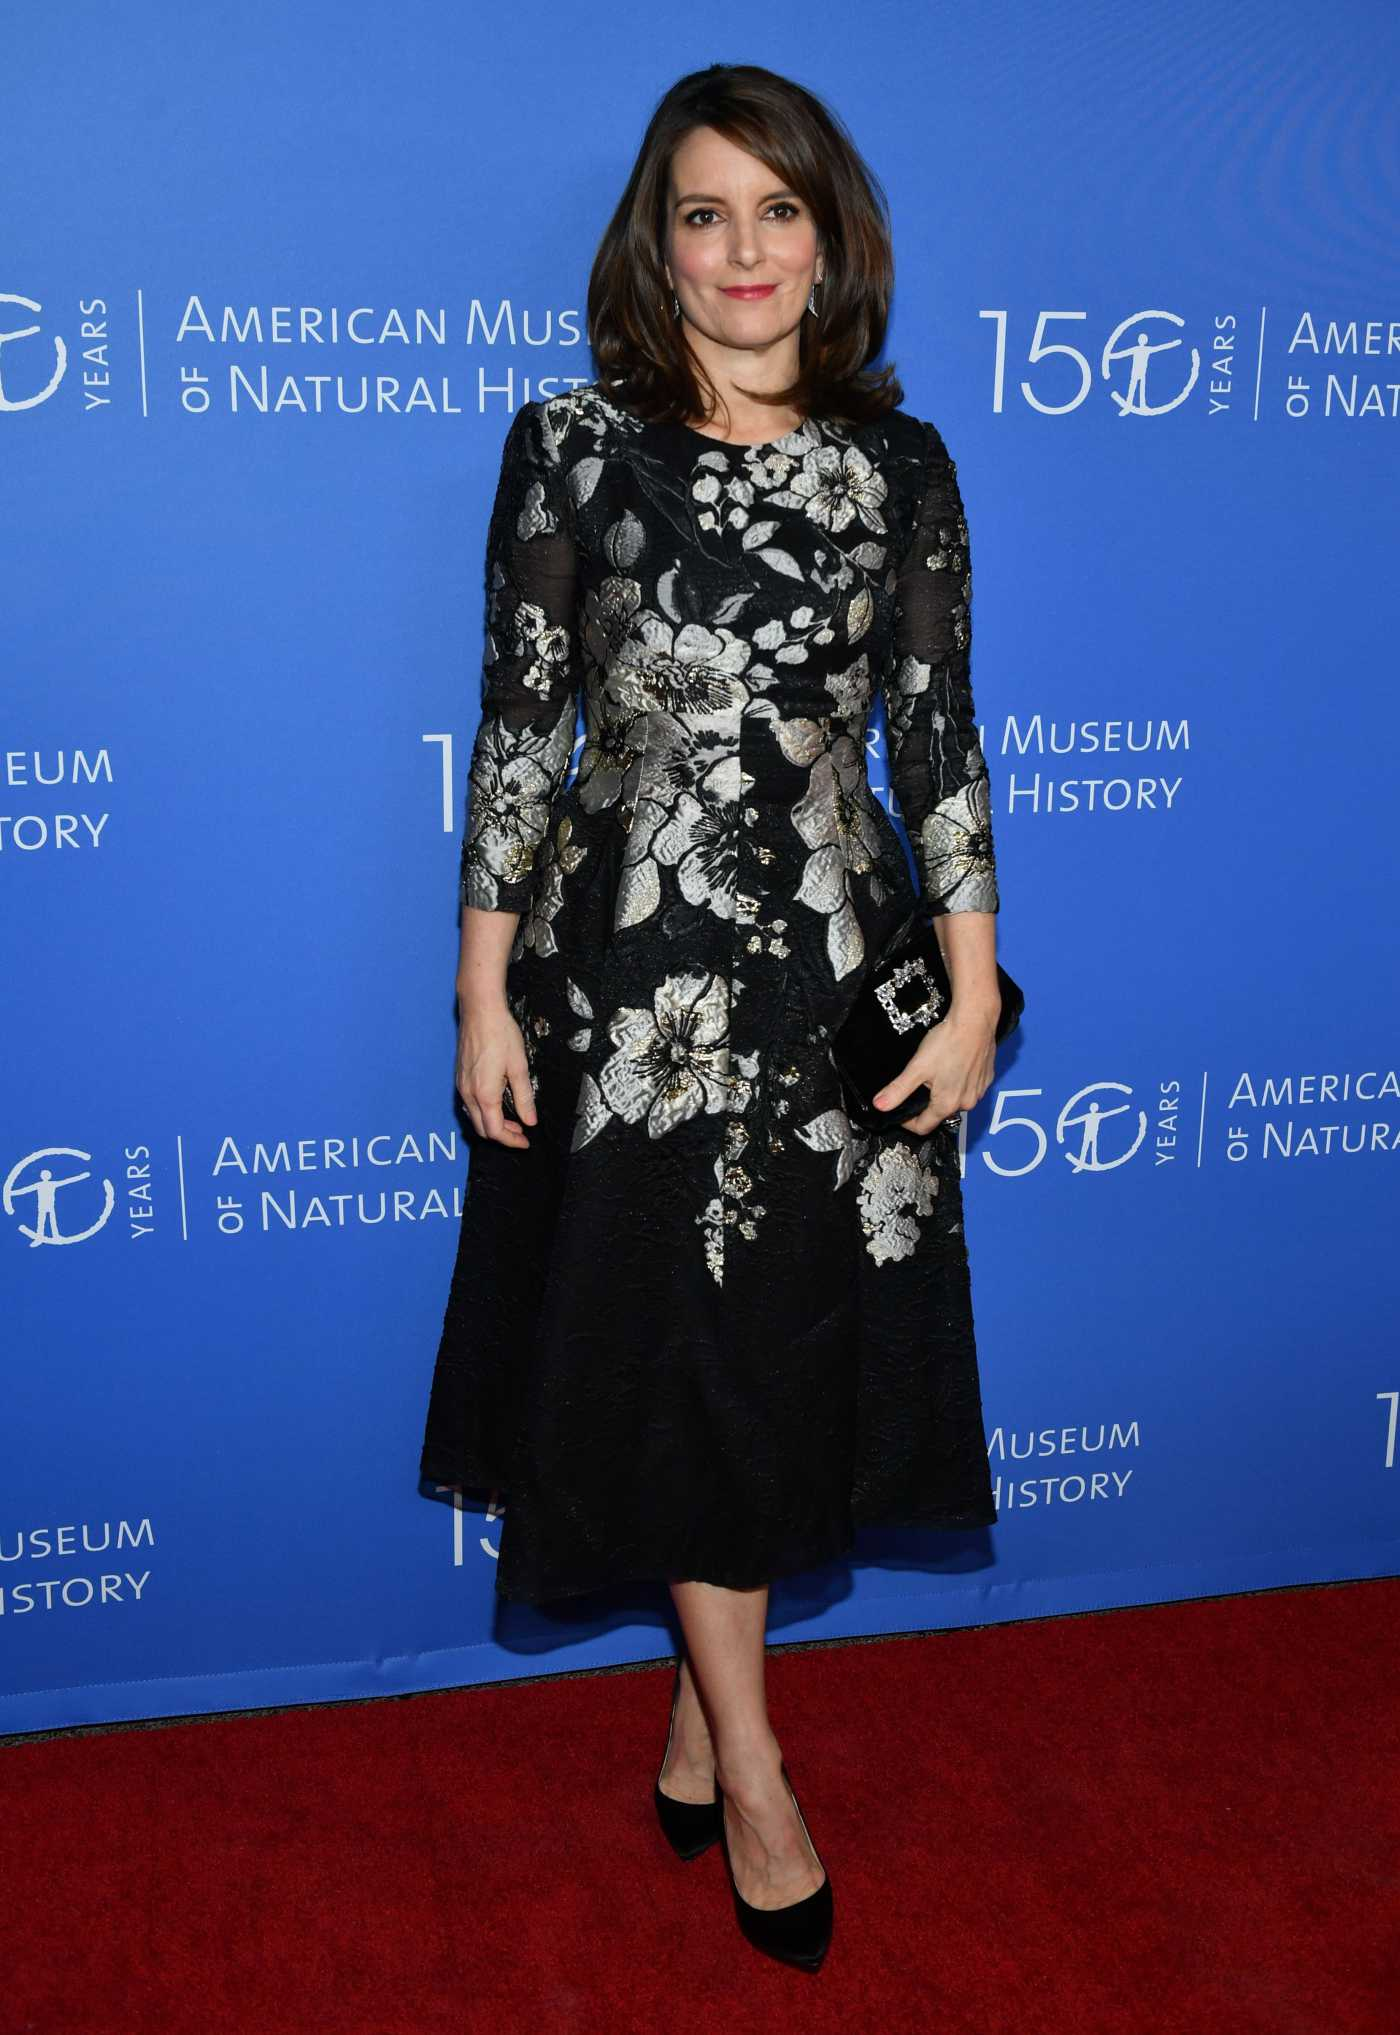 Tina Fey Attends American Museum of Natural History Annual Benefit Gala in New York 11/21/2019